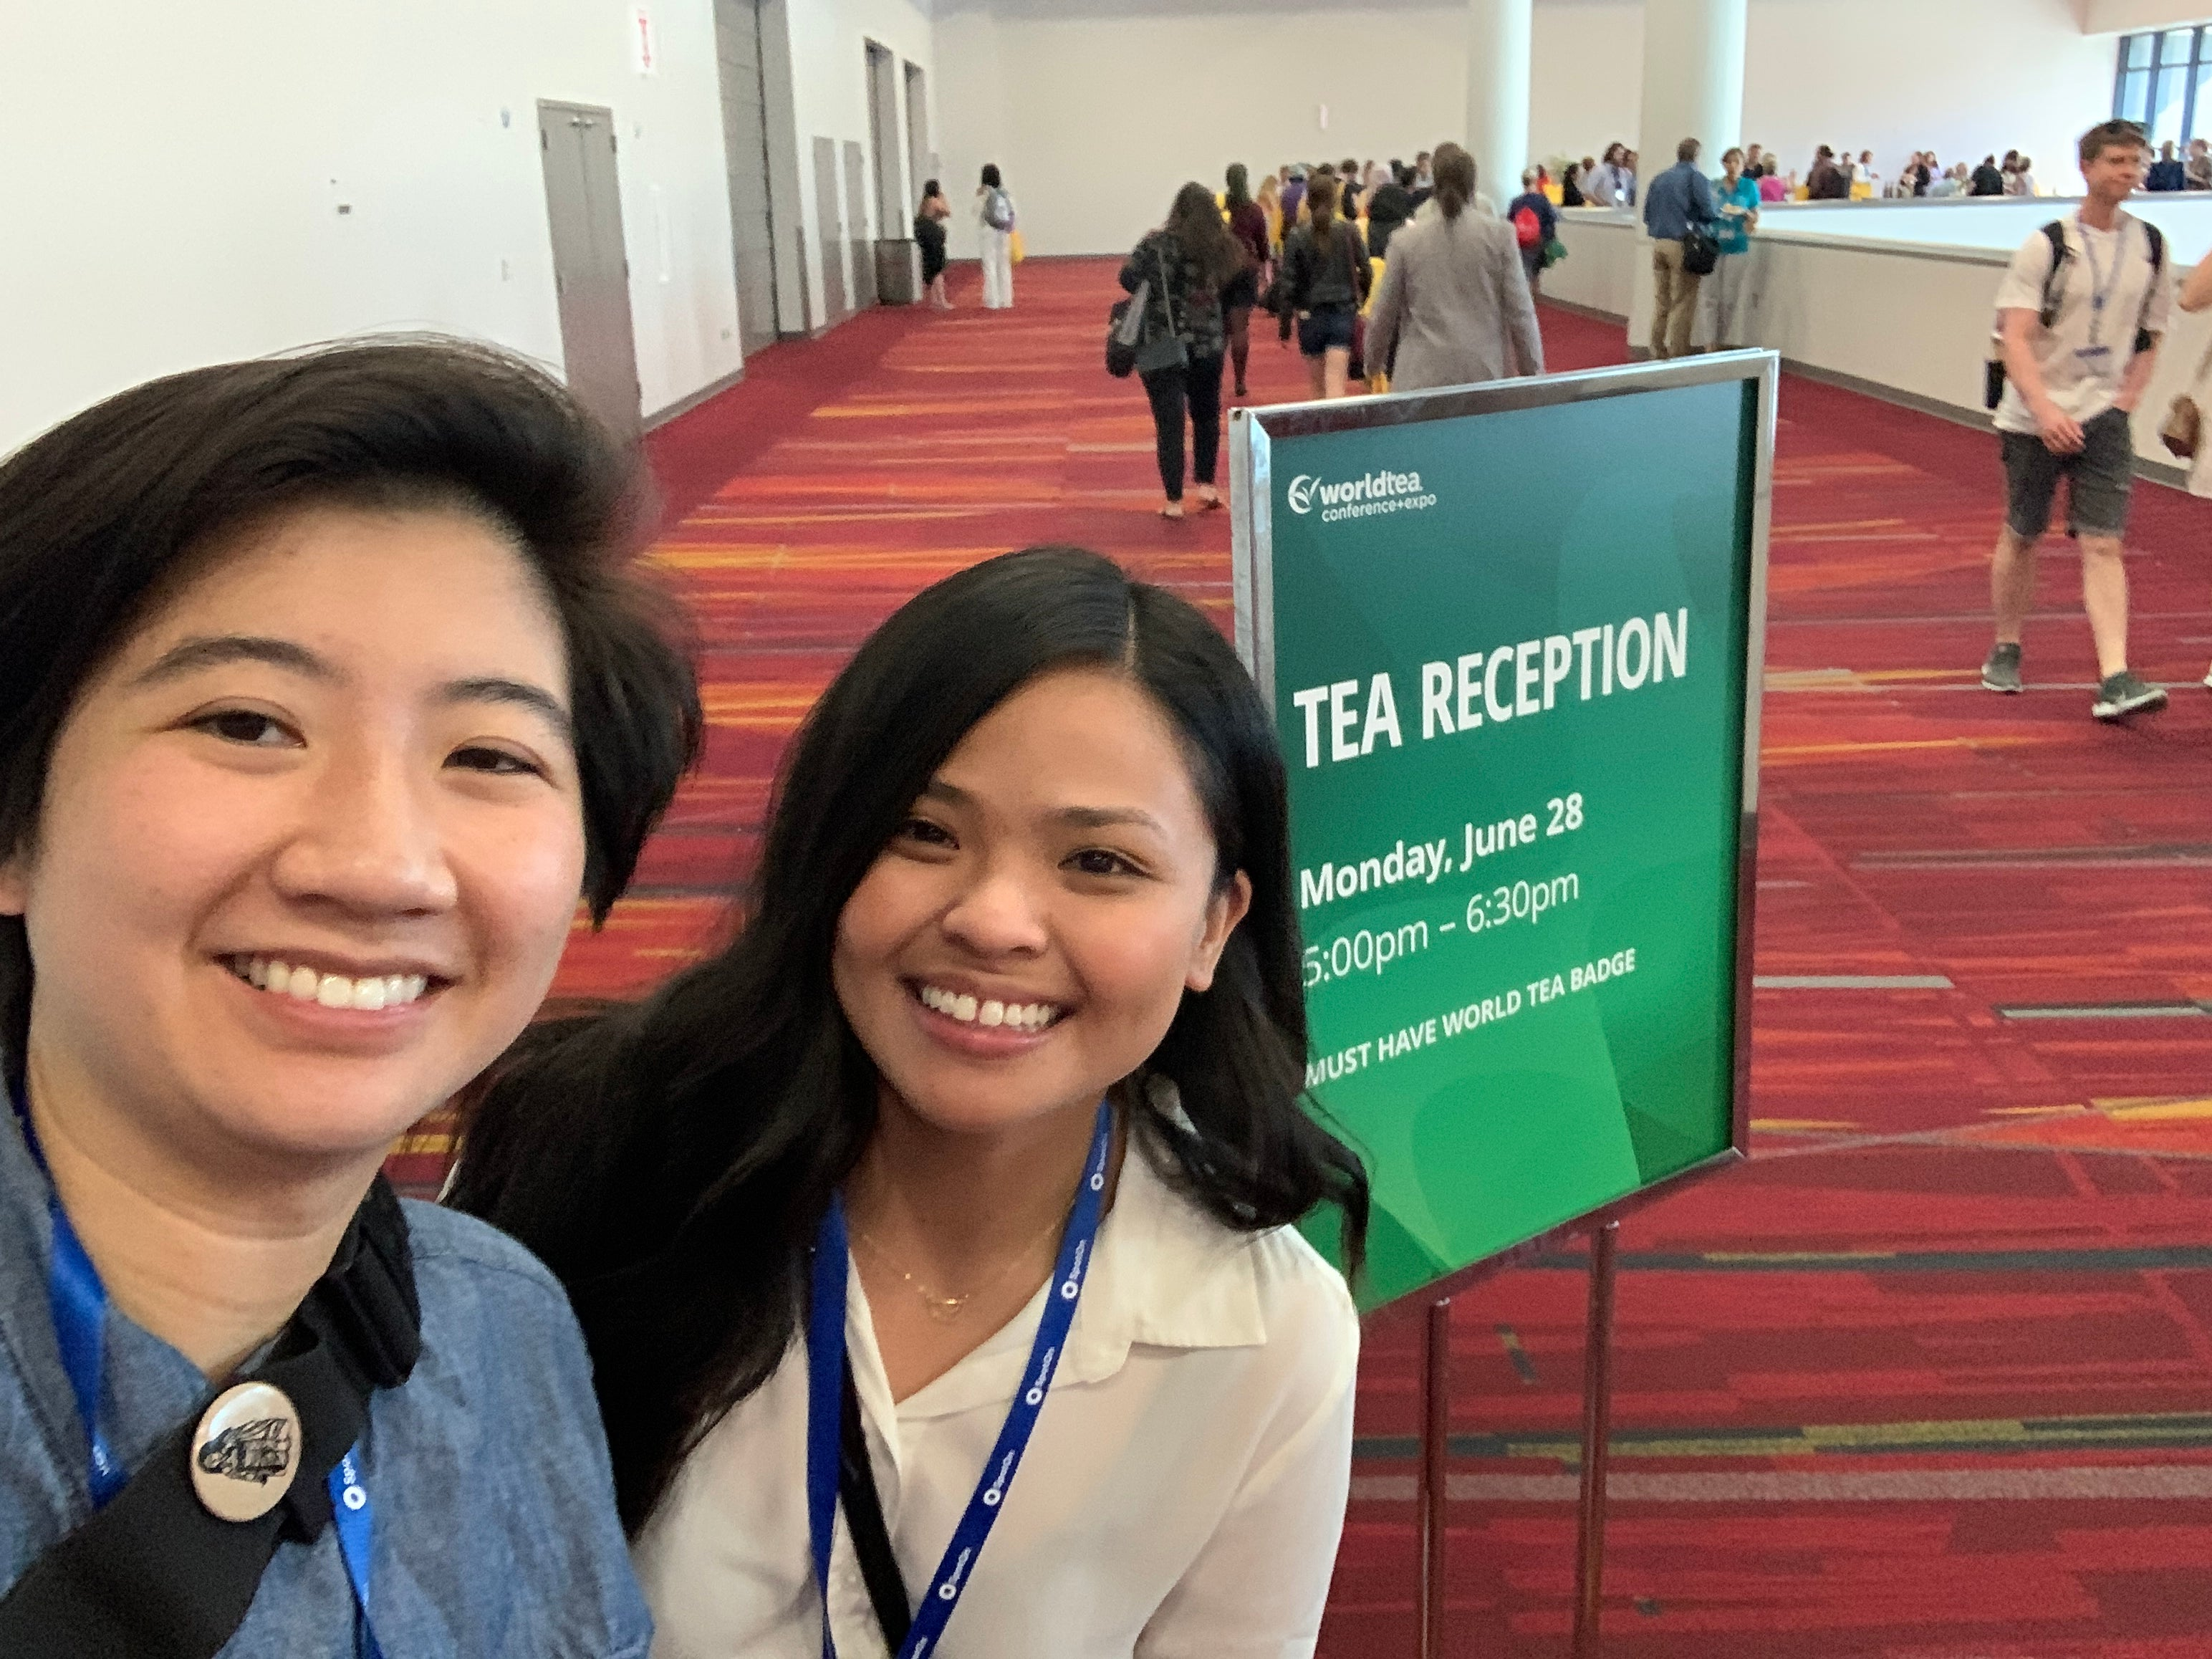 PARU Founders/Owners Amy Truong & Lani Gobaleza at World Tea Expo 2021 in Las Vegas, NV